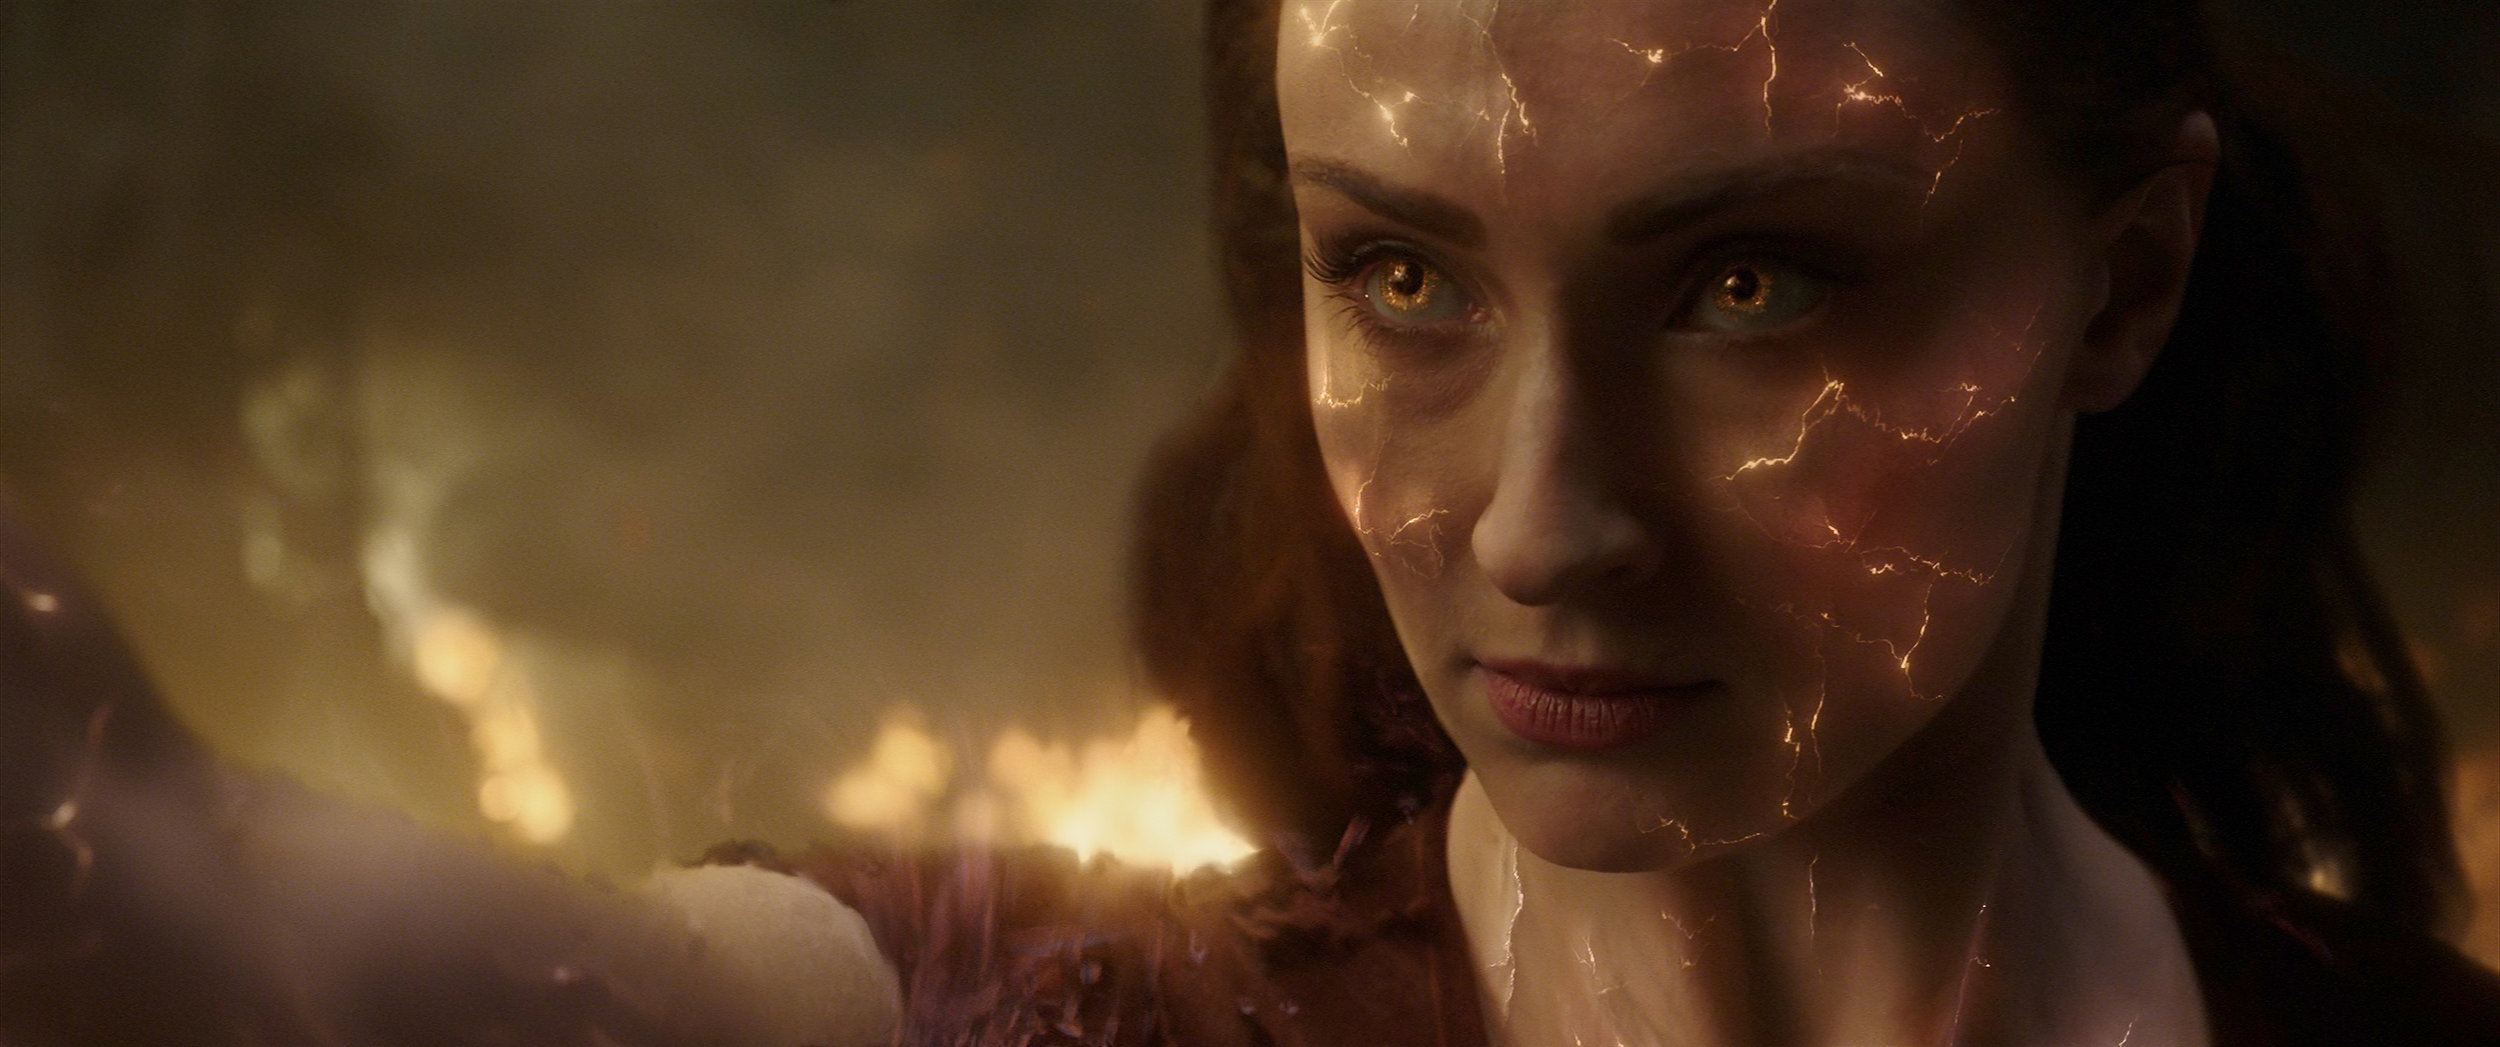 """Sophie Turner plays Jean Grey, a telekinetic mutant who finds her powers growing, in """"the """"X-Men"""" franchise installment """"Dark Phoenix."""" (Photo courtesy of 20th Century Fox.)"""